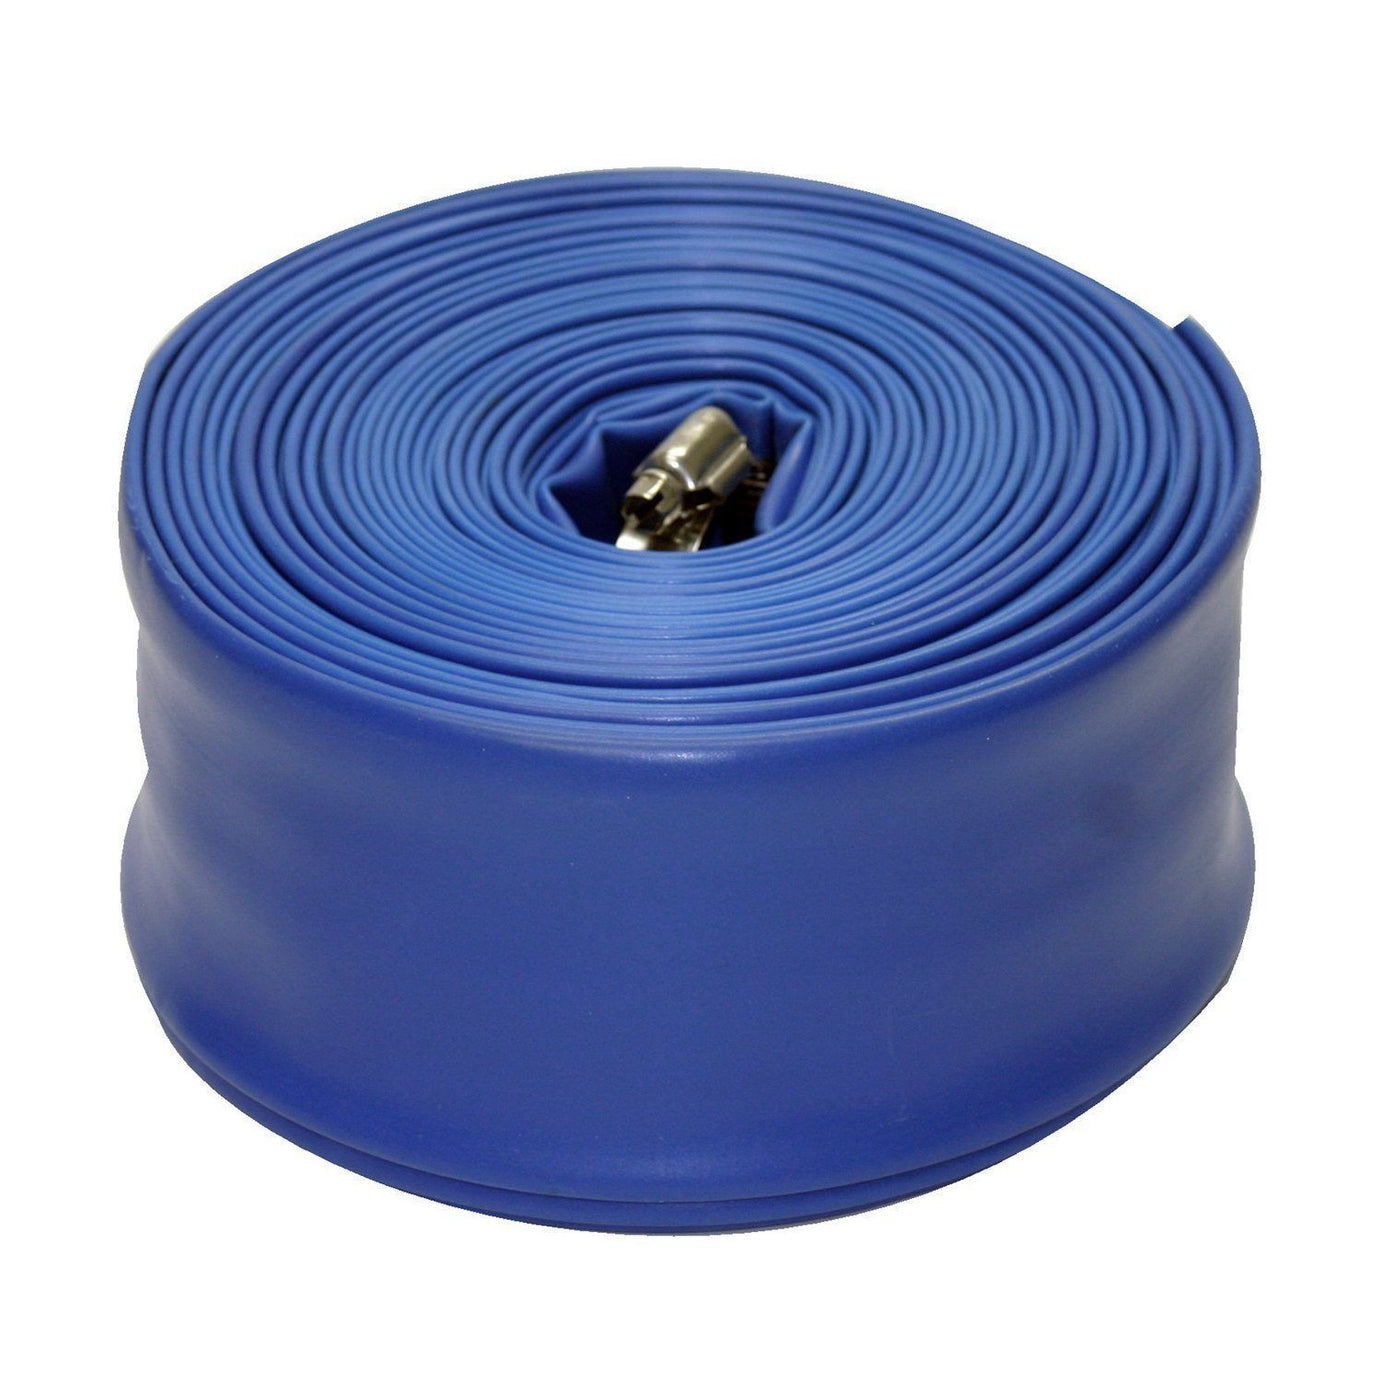 Blue devil Pool Equipment Pool Store Canada Blue Devil Back Wash Hose 1 1/2 x 25ft - Pool Store Canada